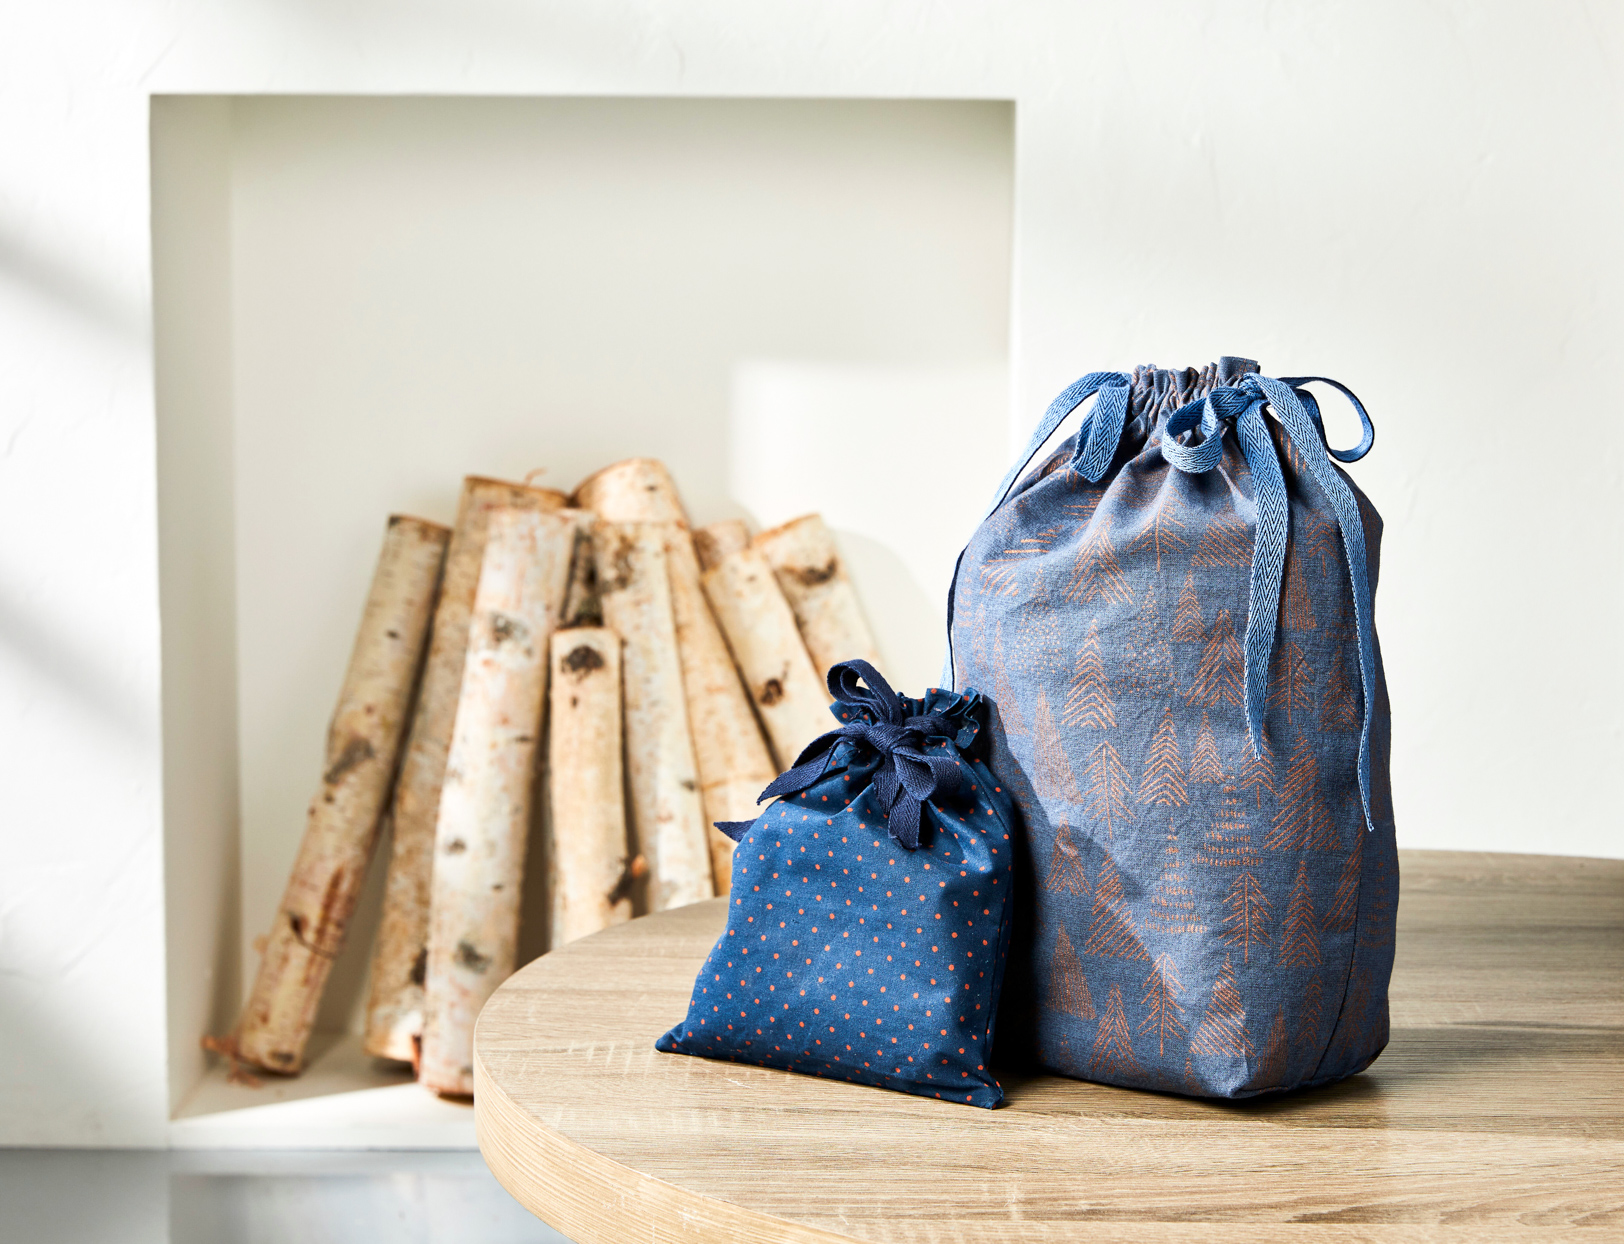 2 blue bags with ties on top